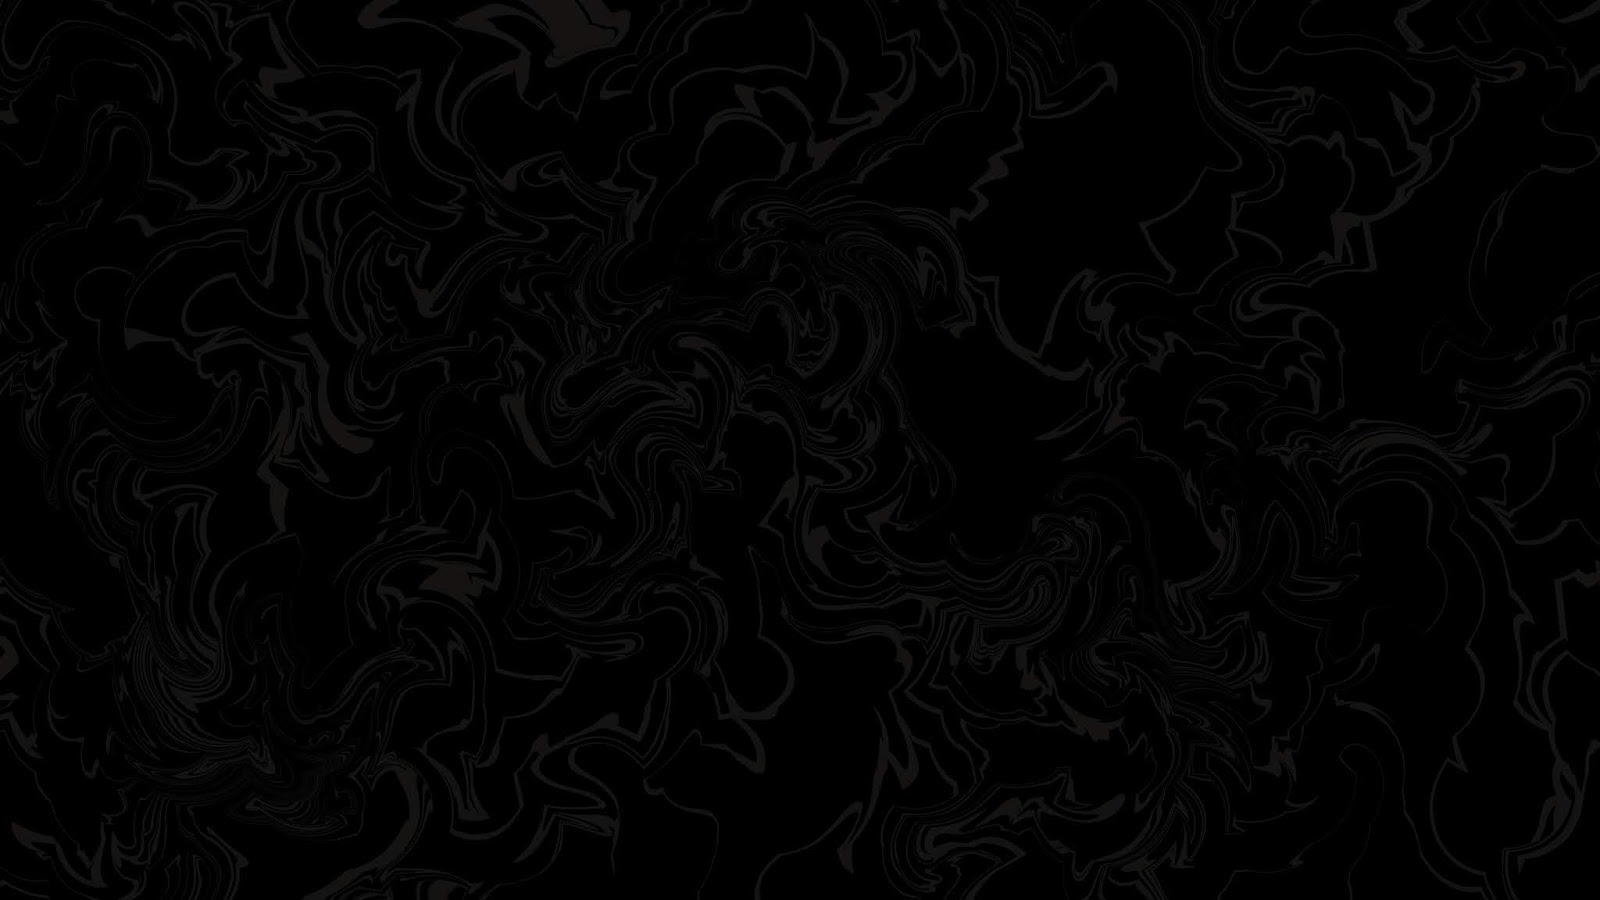 Abstract Wallpaper Art With Black Or Dark Color